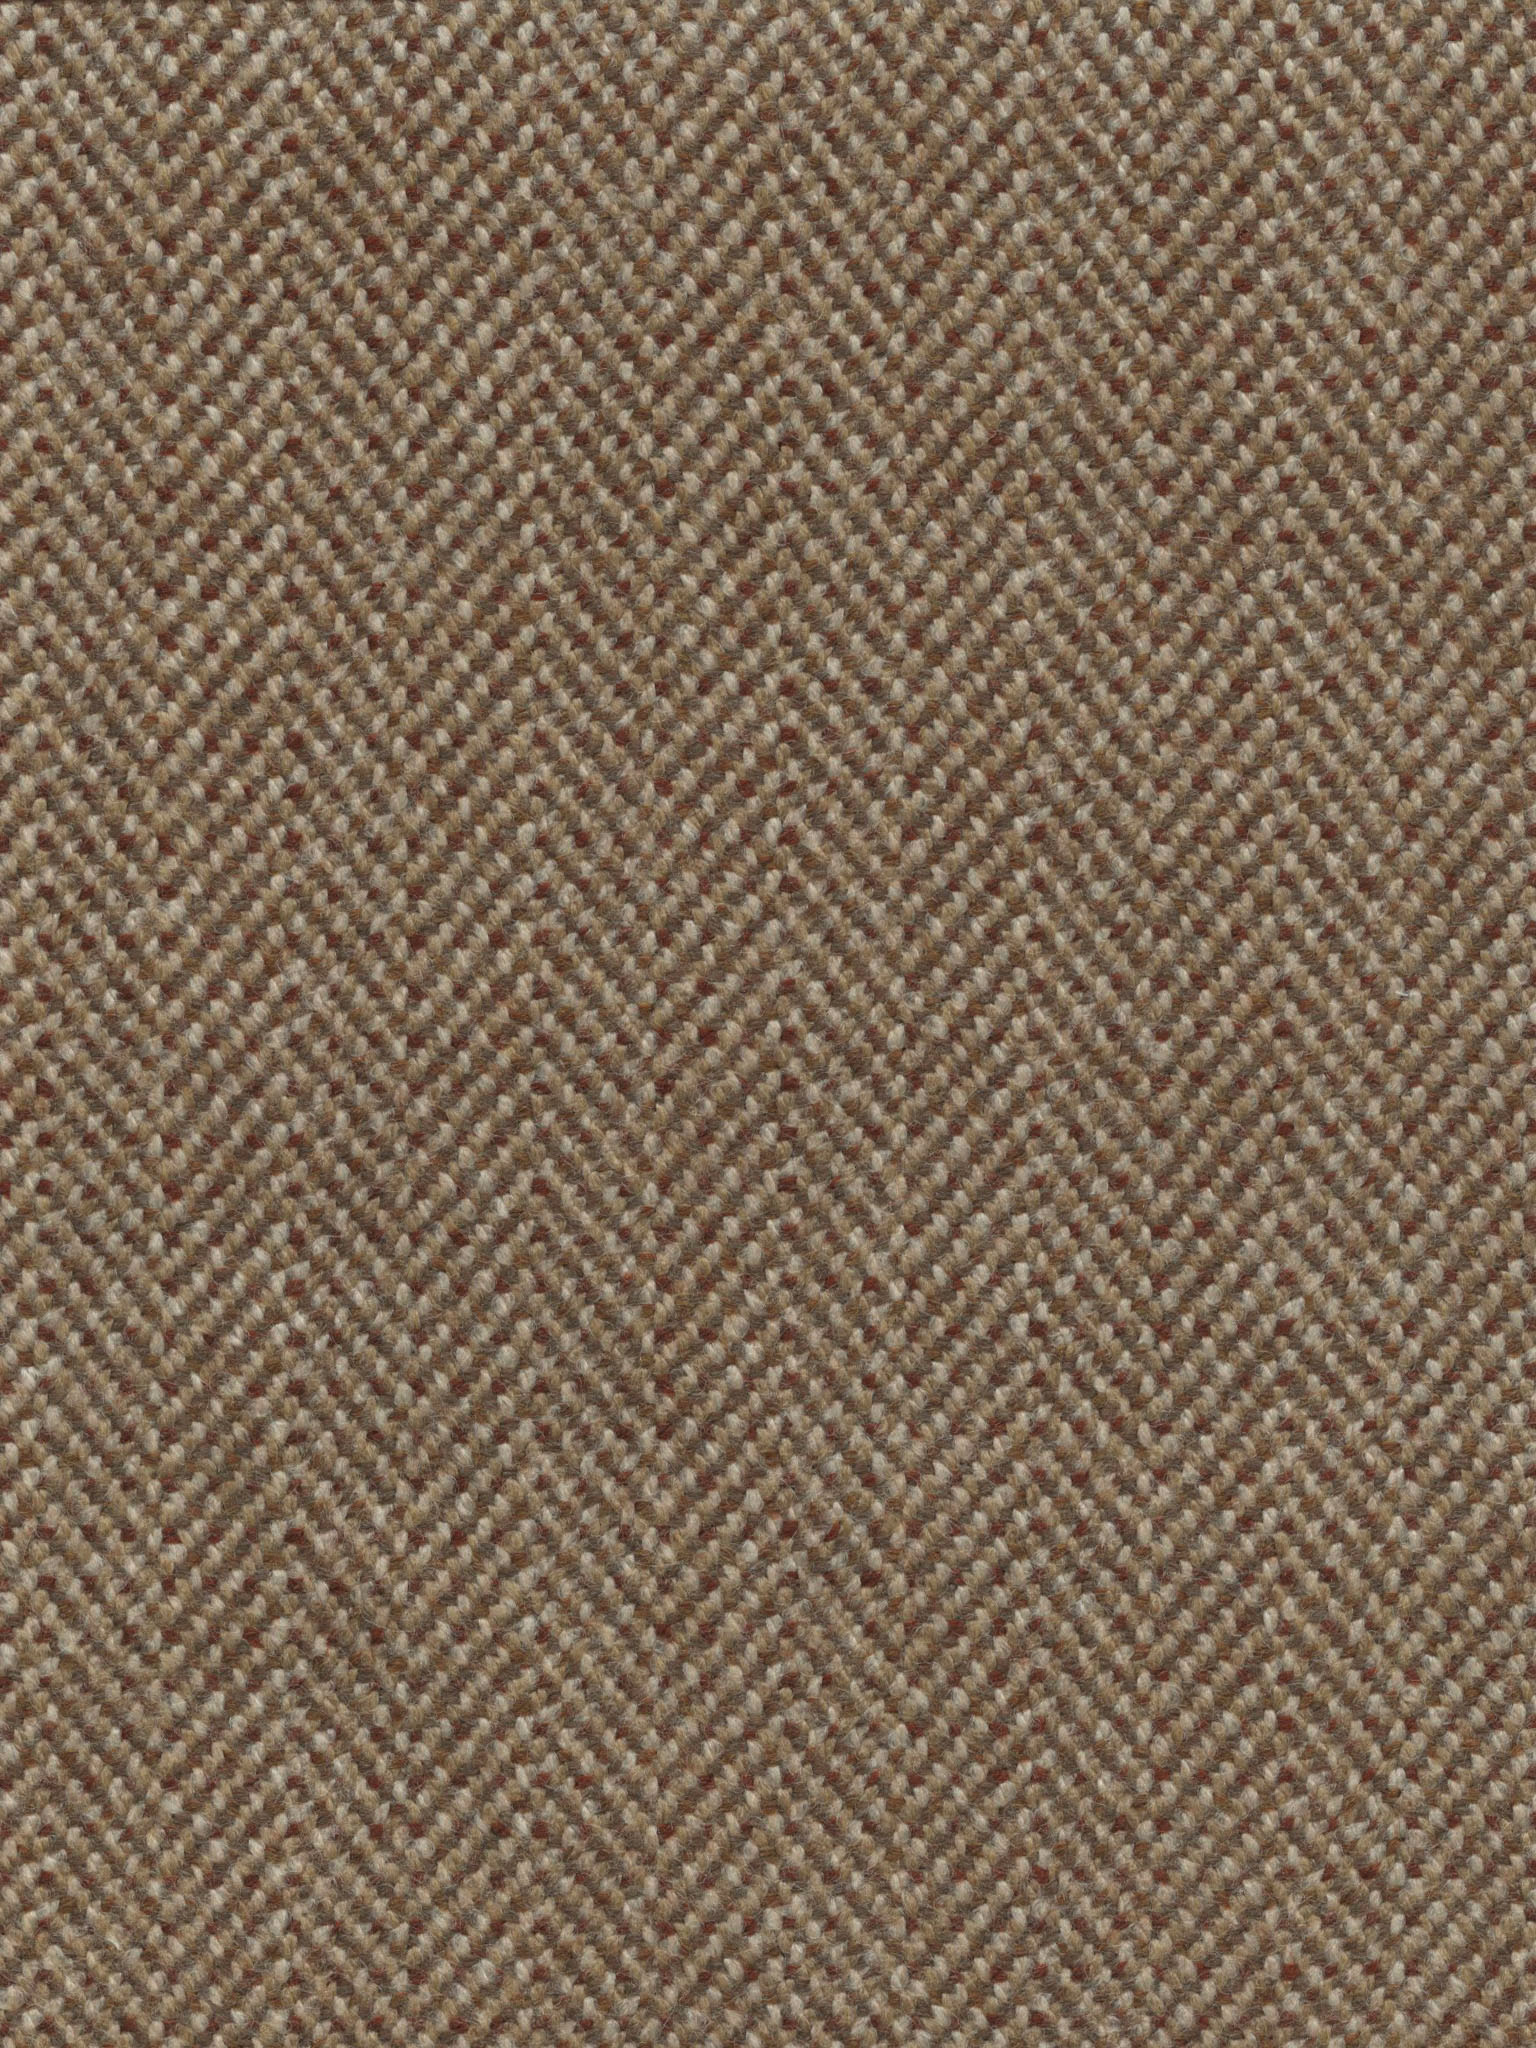 Savile Row Windsor Tweed DE12105